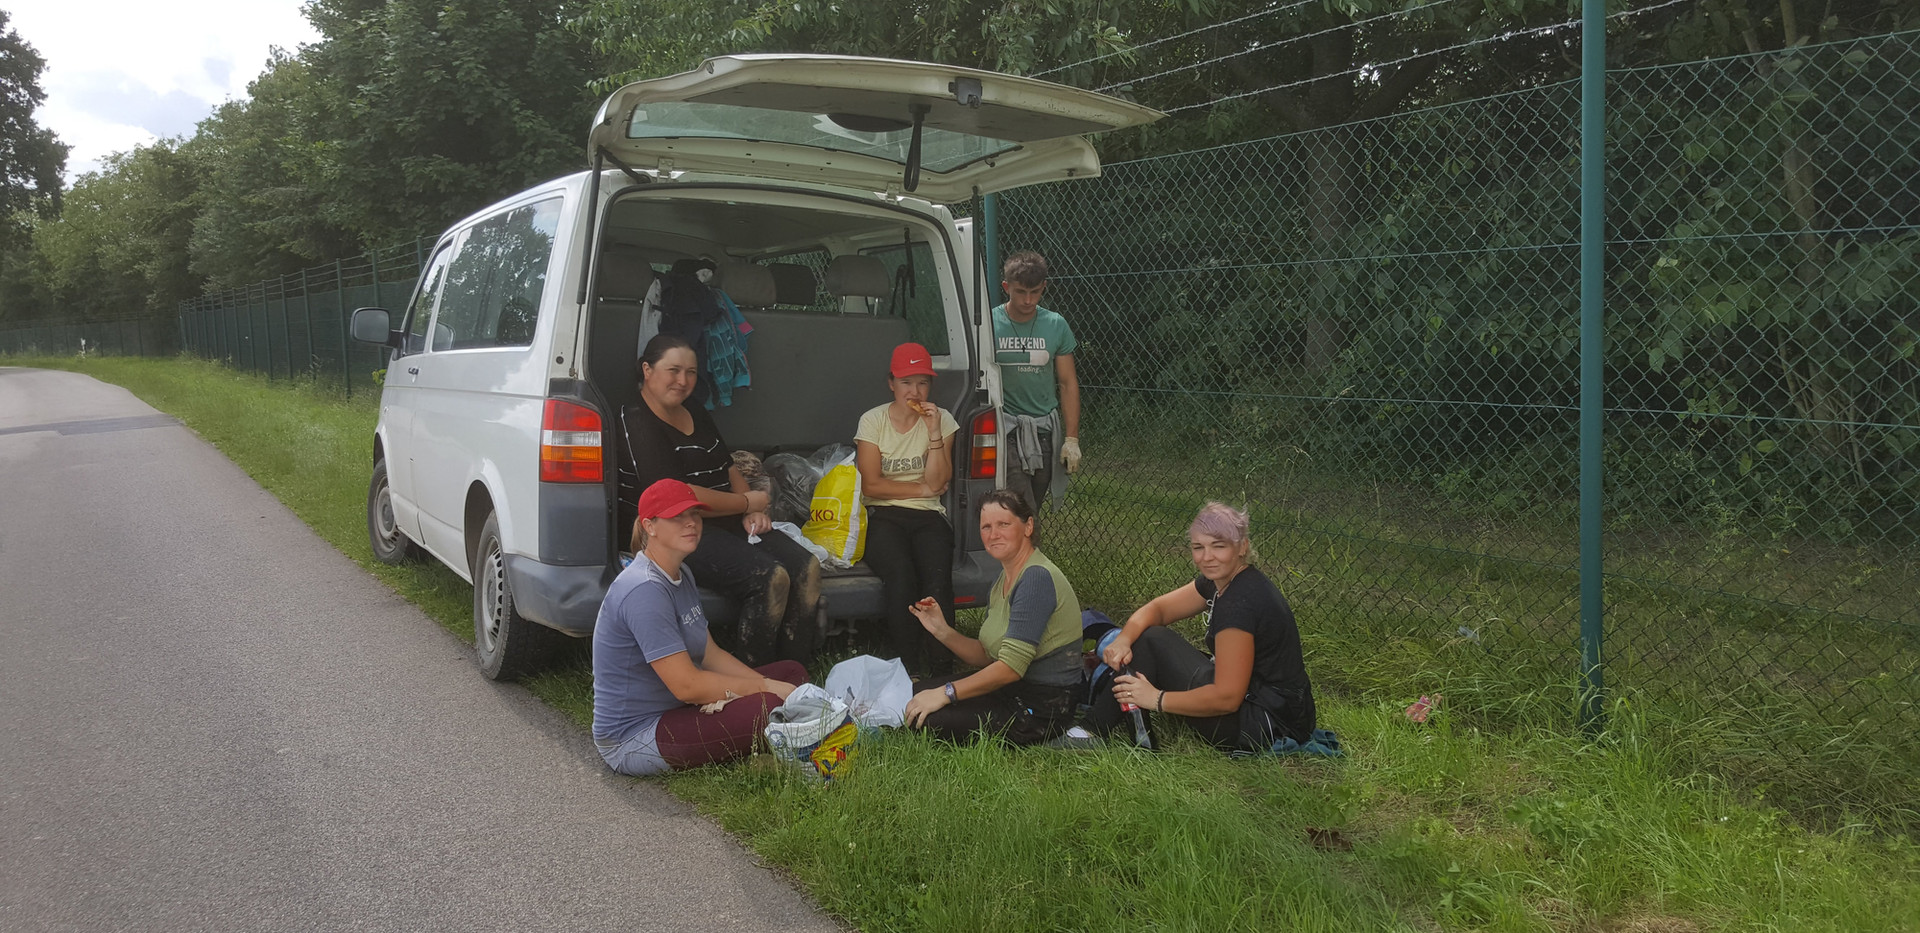 Picknick in der Mittagspause